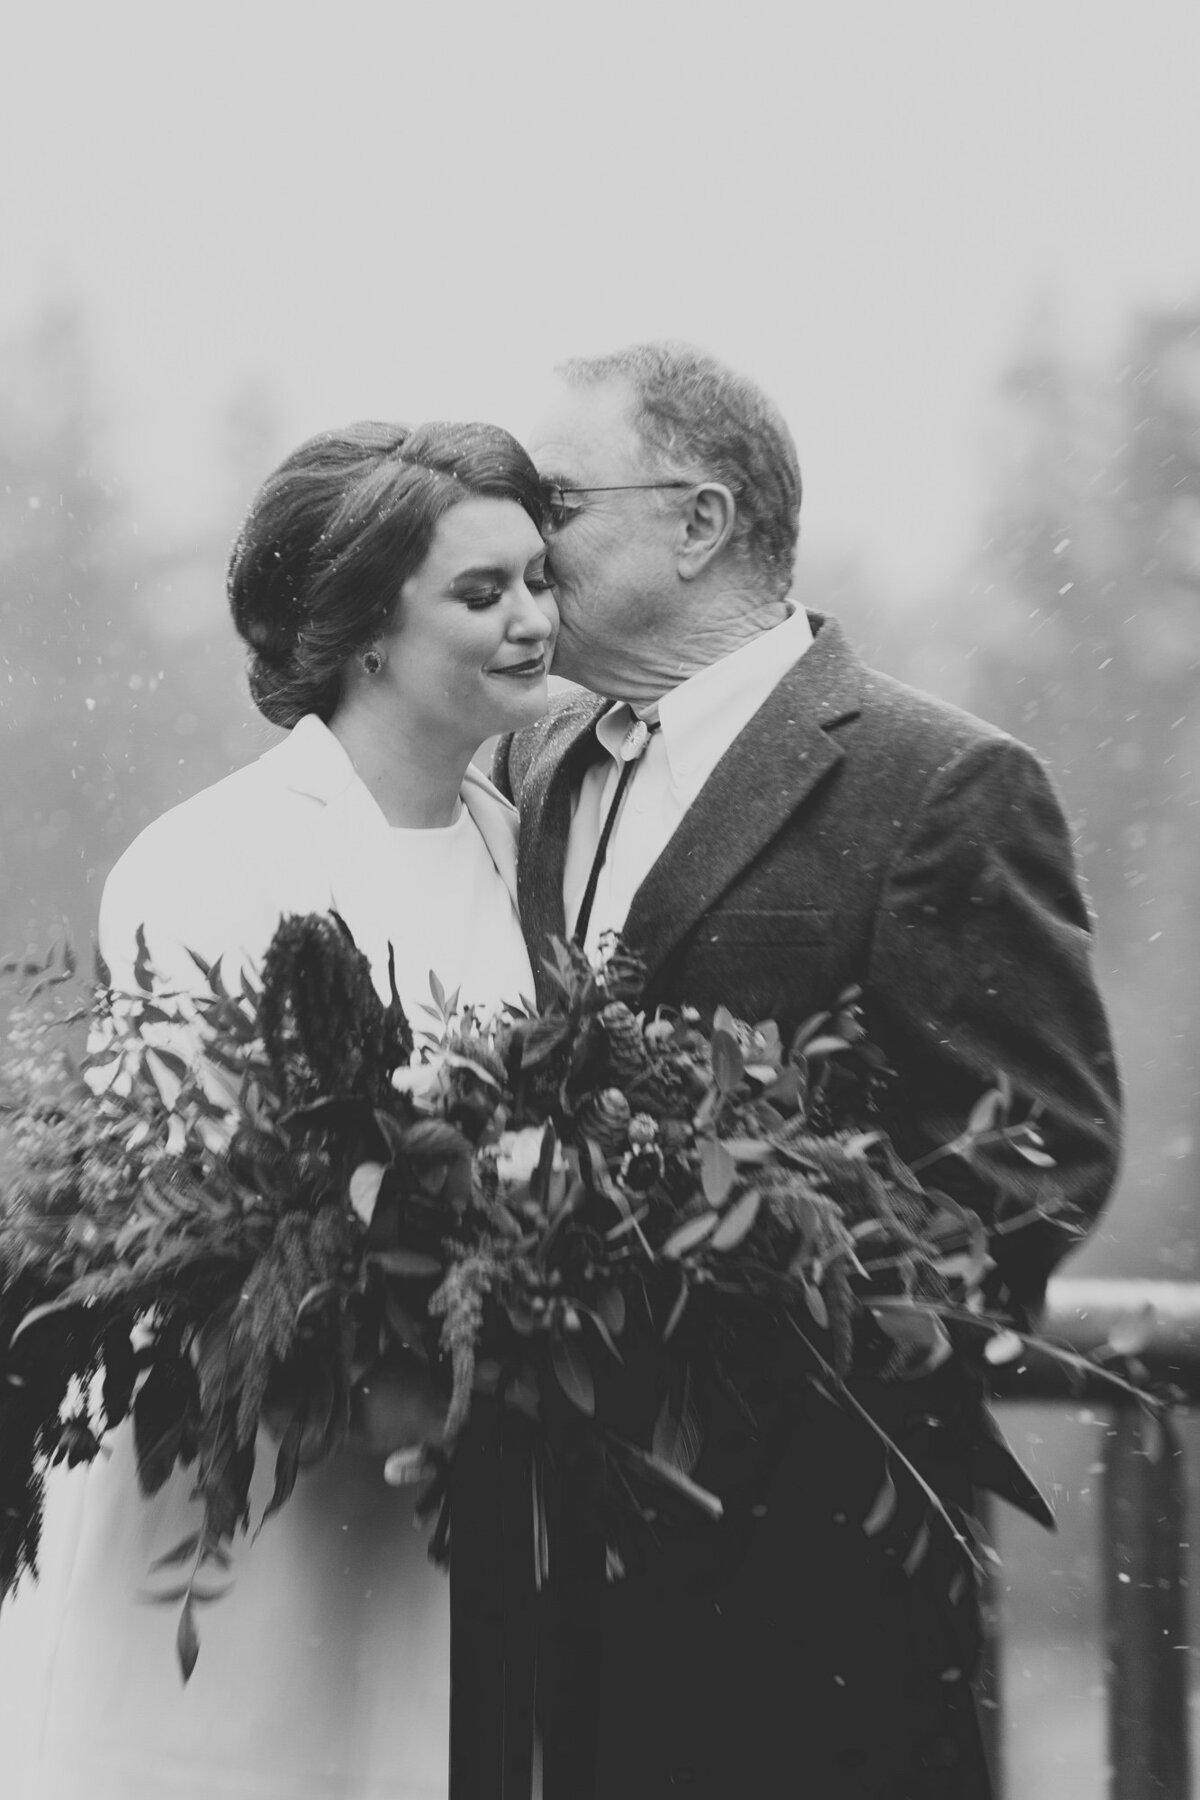 Jennifer_Mooney_Photography_Abbey_Stephen_Fall_Winter_Glacier_Park_Elopement-187